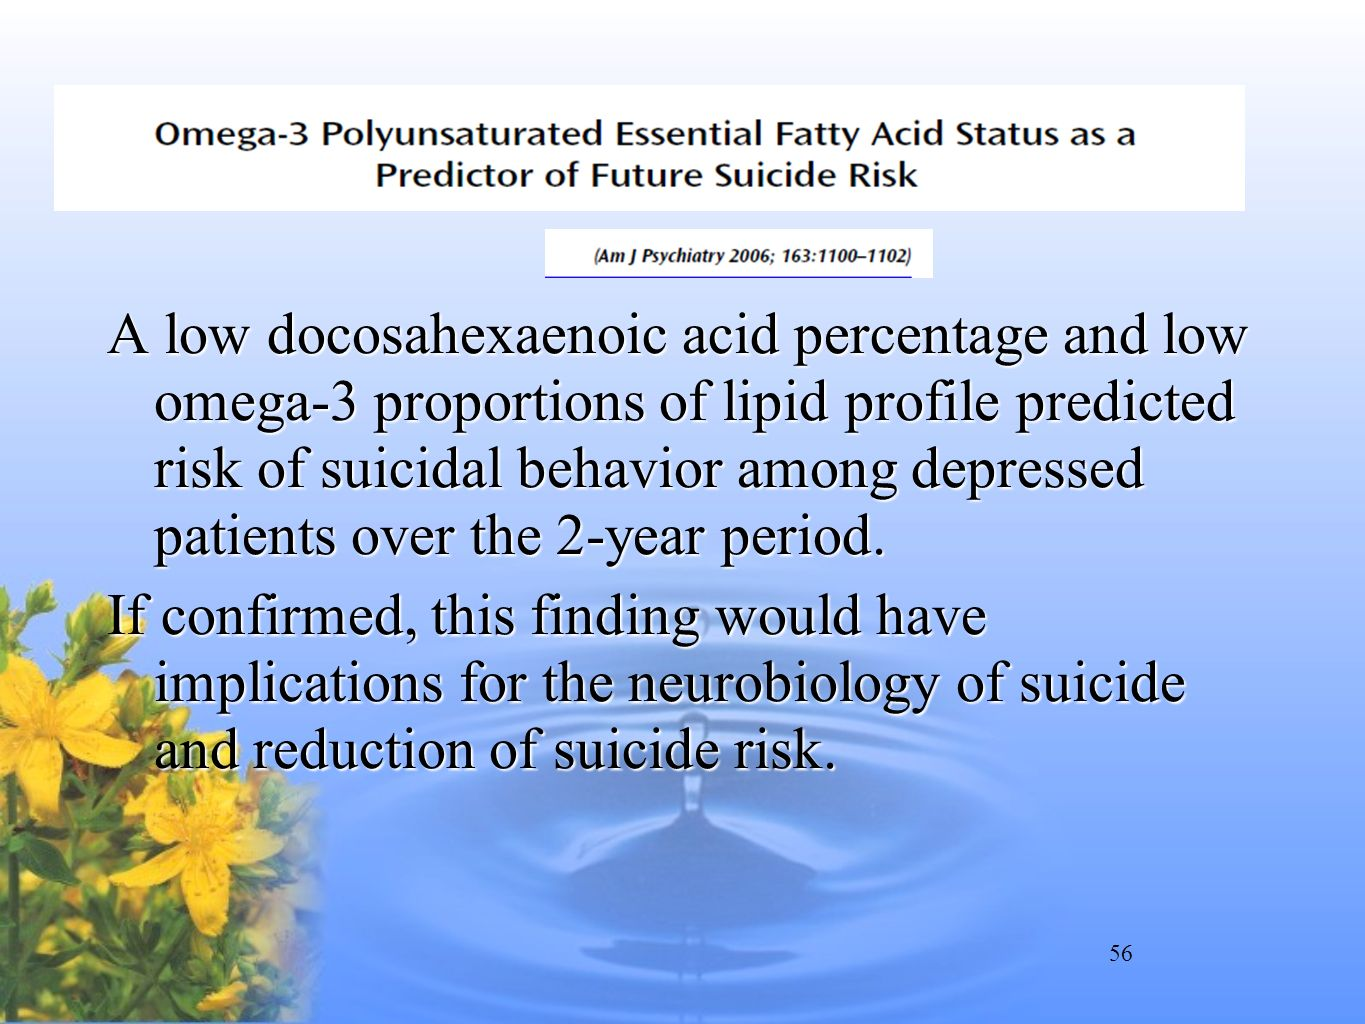 56 A low docosahexaenoic acid percentage and low omega-3 proportions of lipid profile predicted risk of suicidal behavior among depressed patients ove